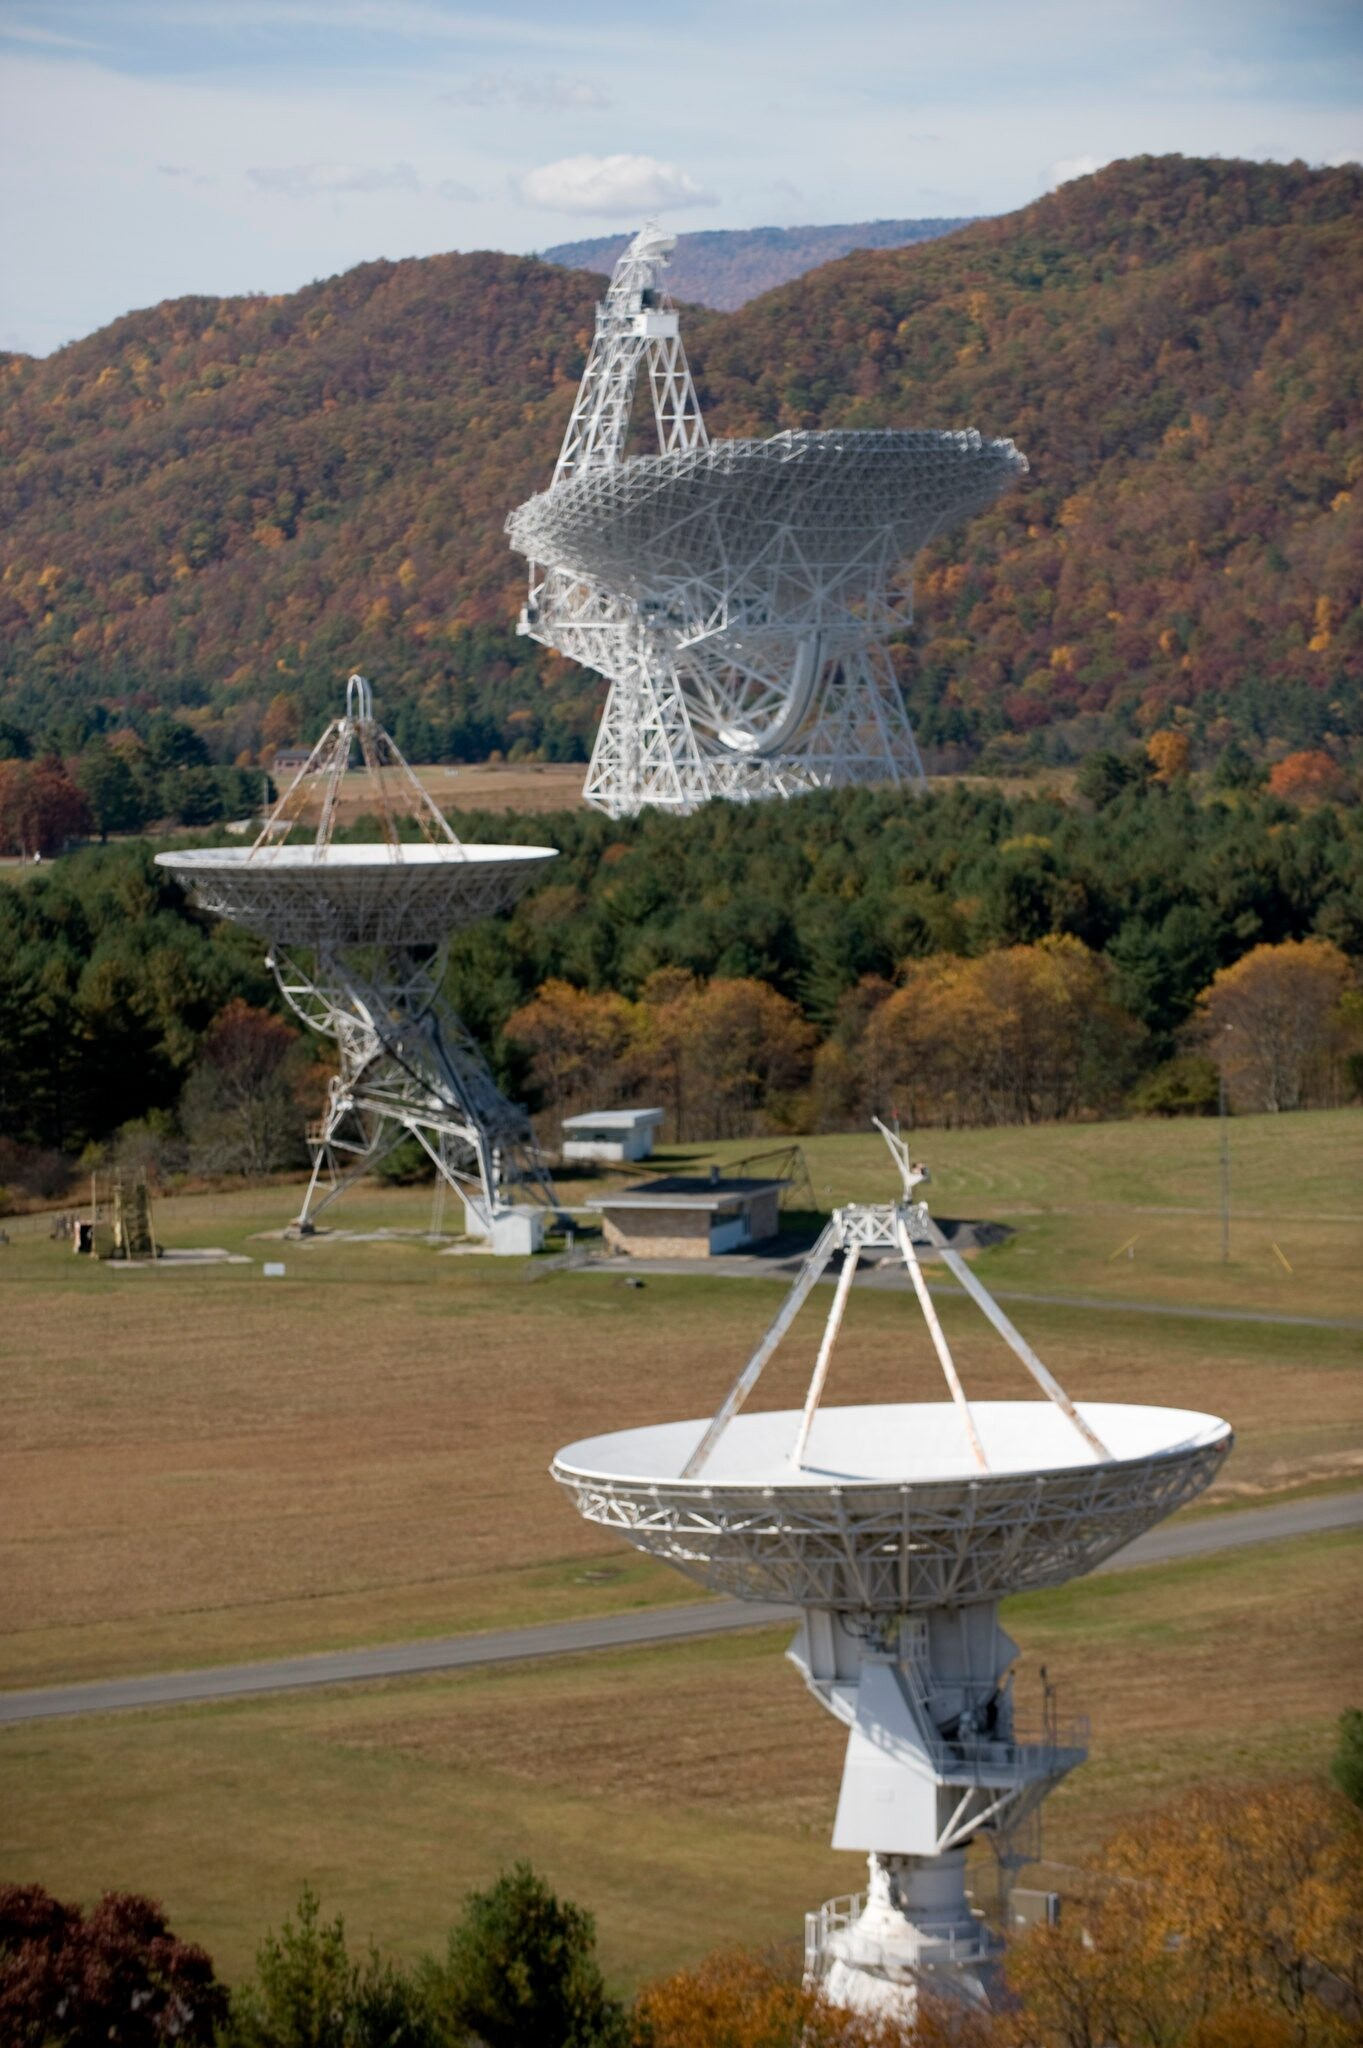 Green Bank's radiotelescopes